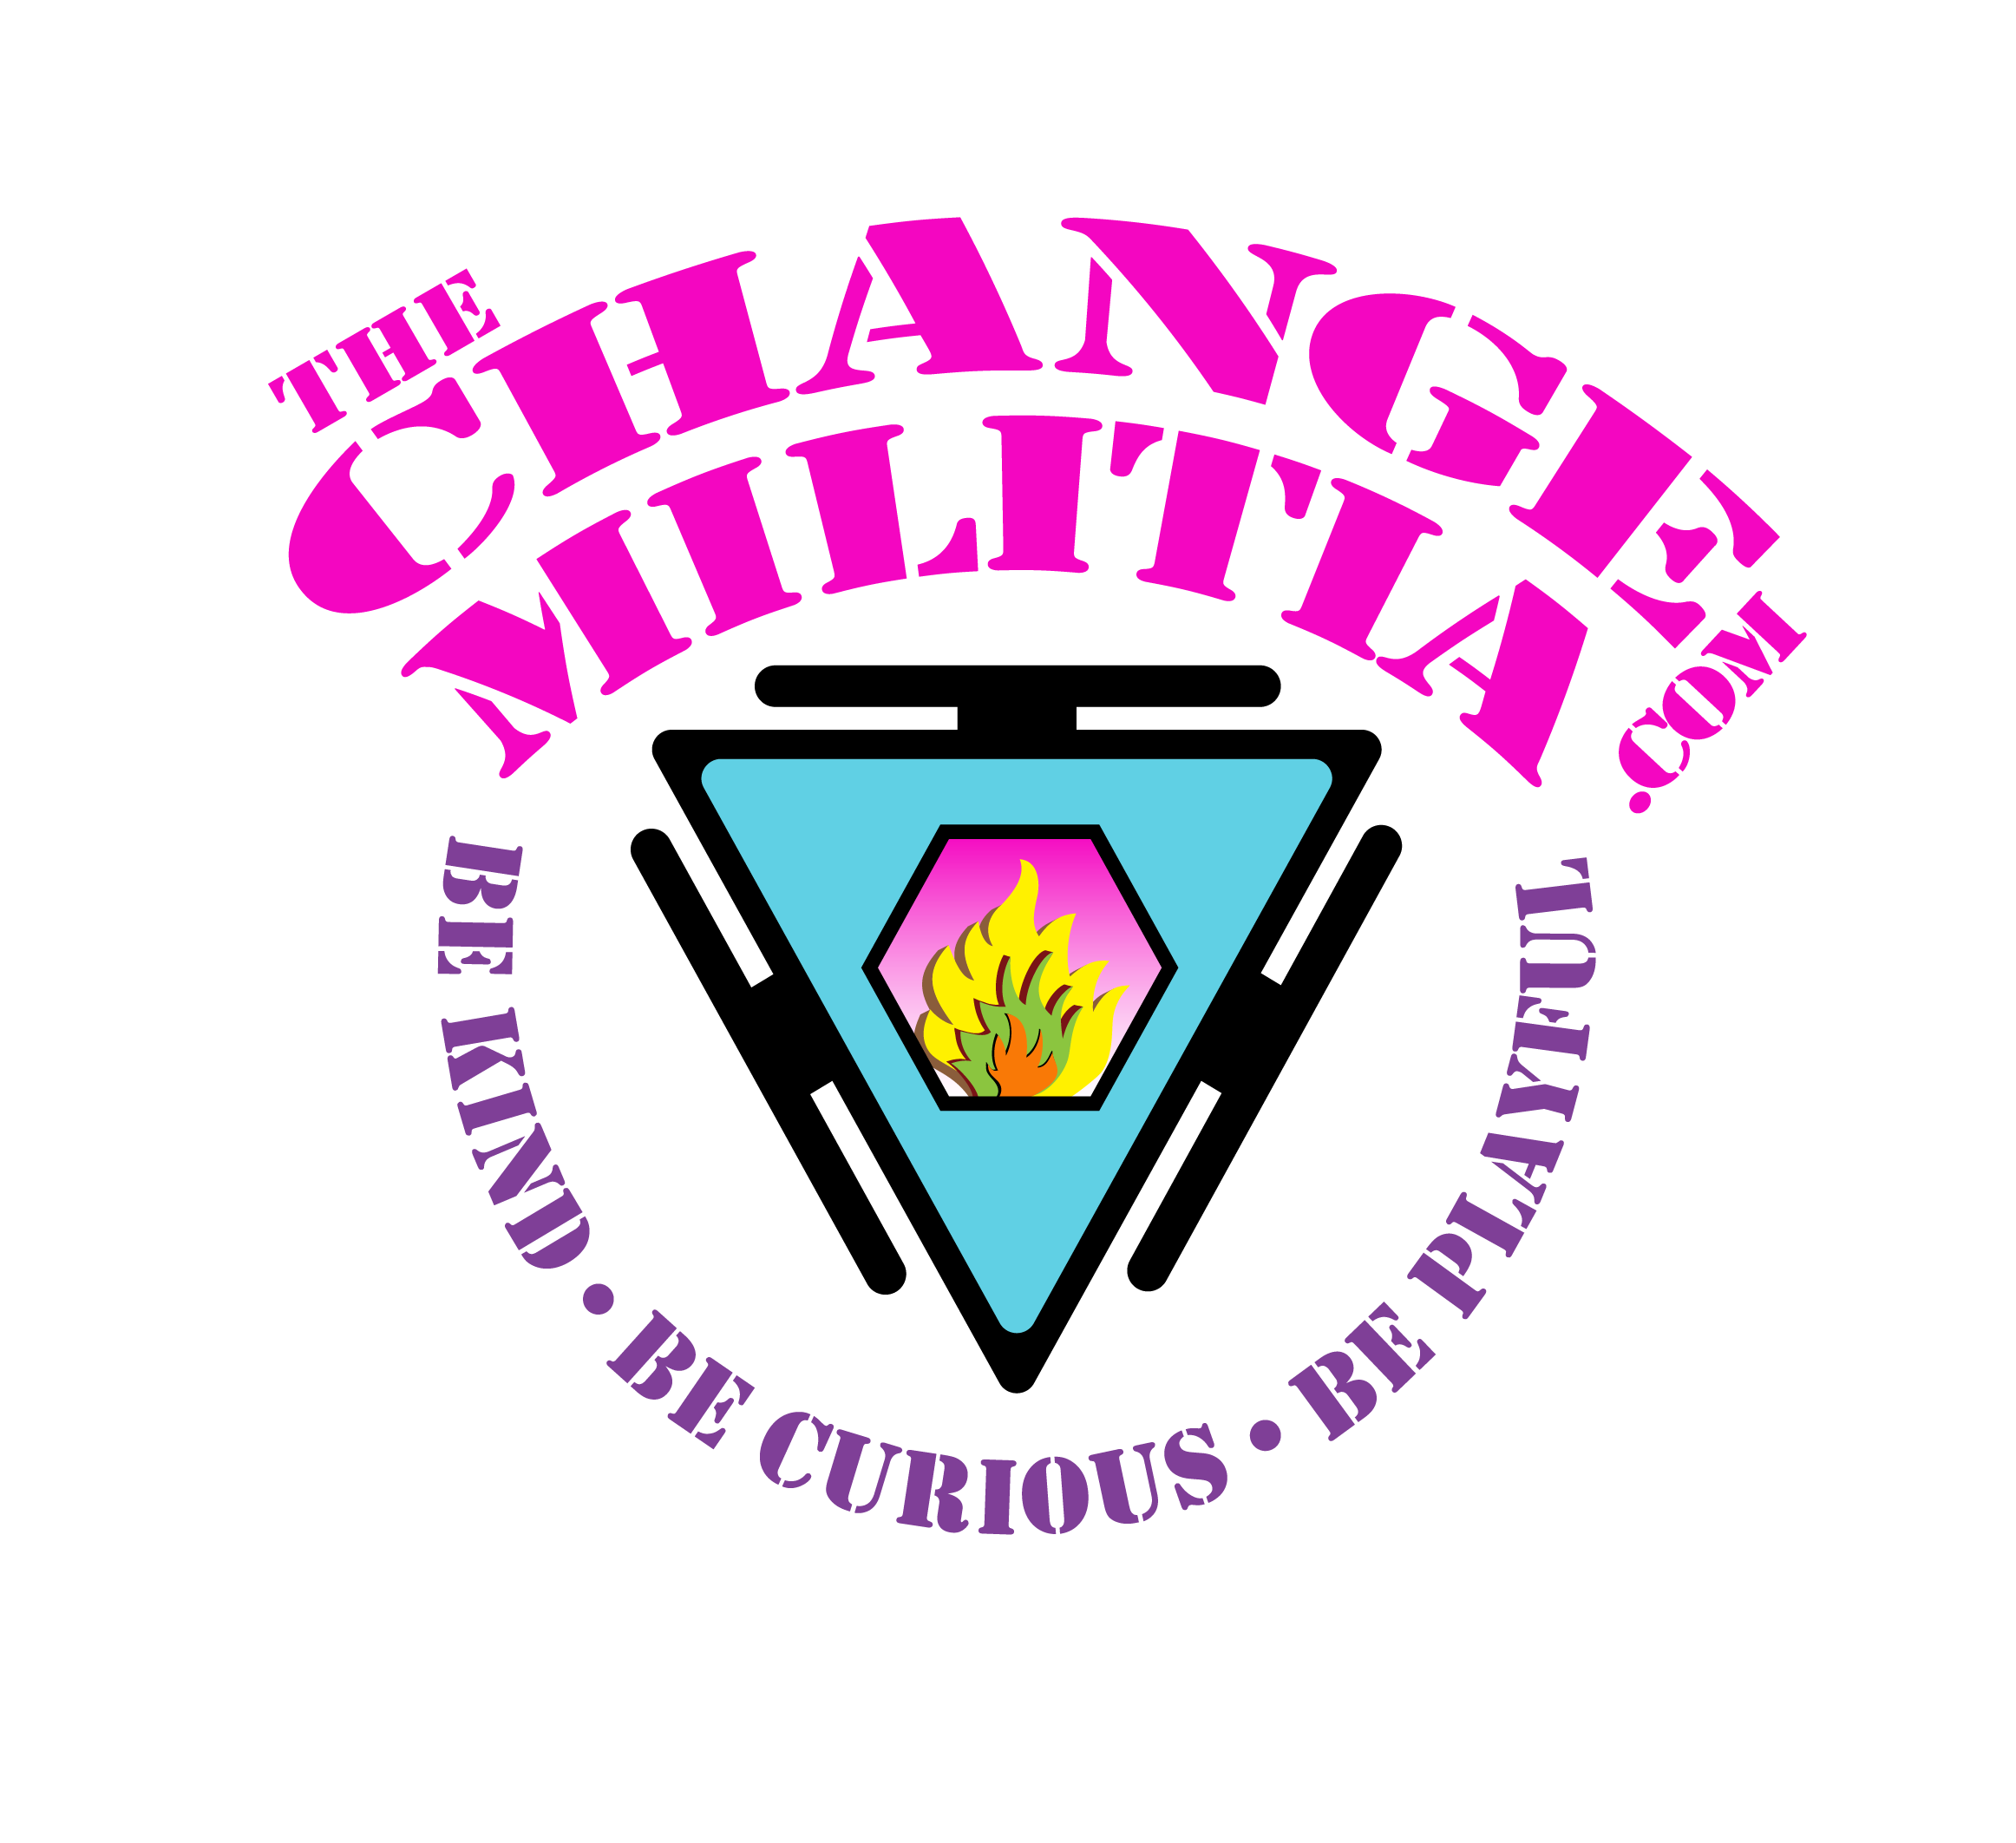 get unstuck with The Change militia